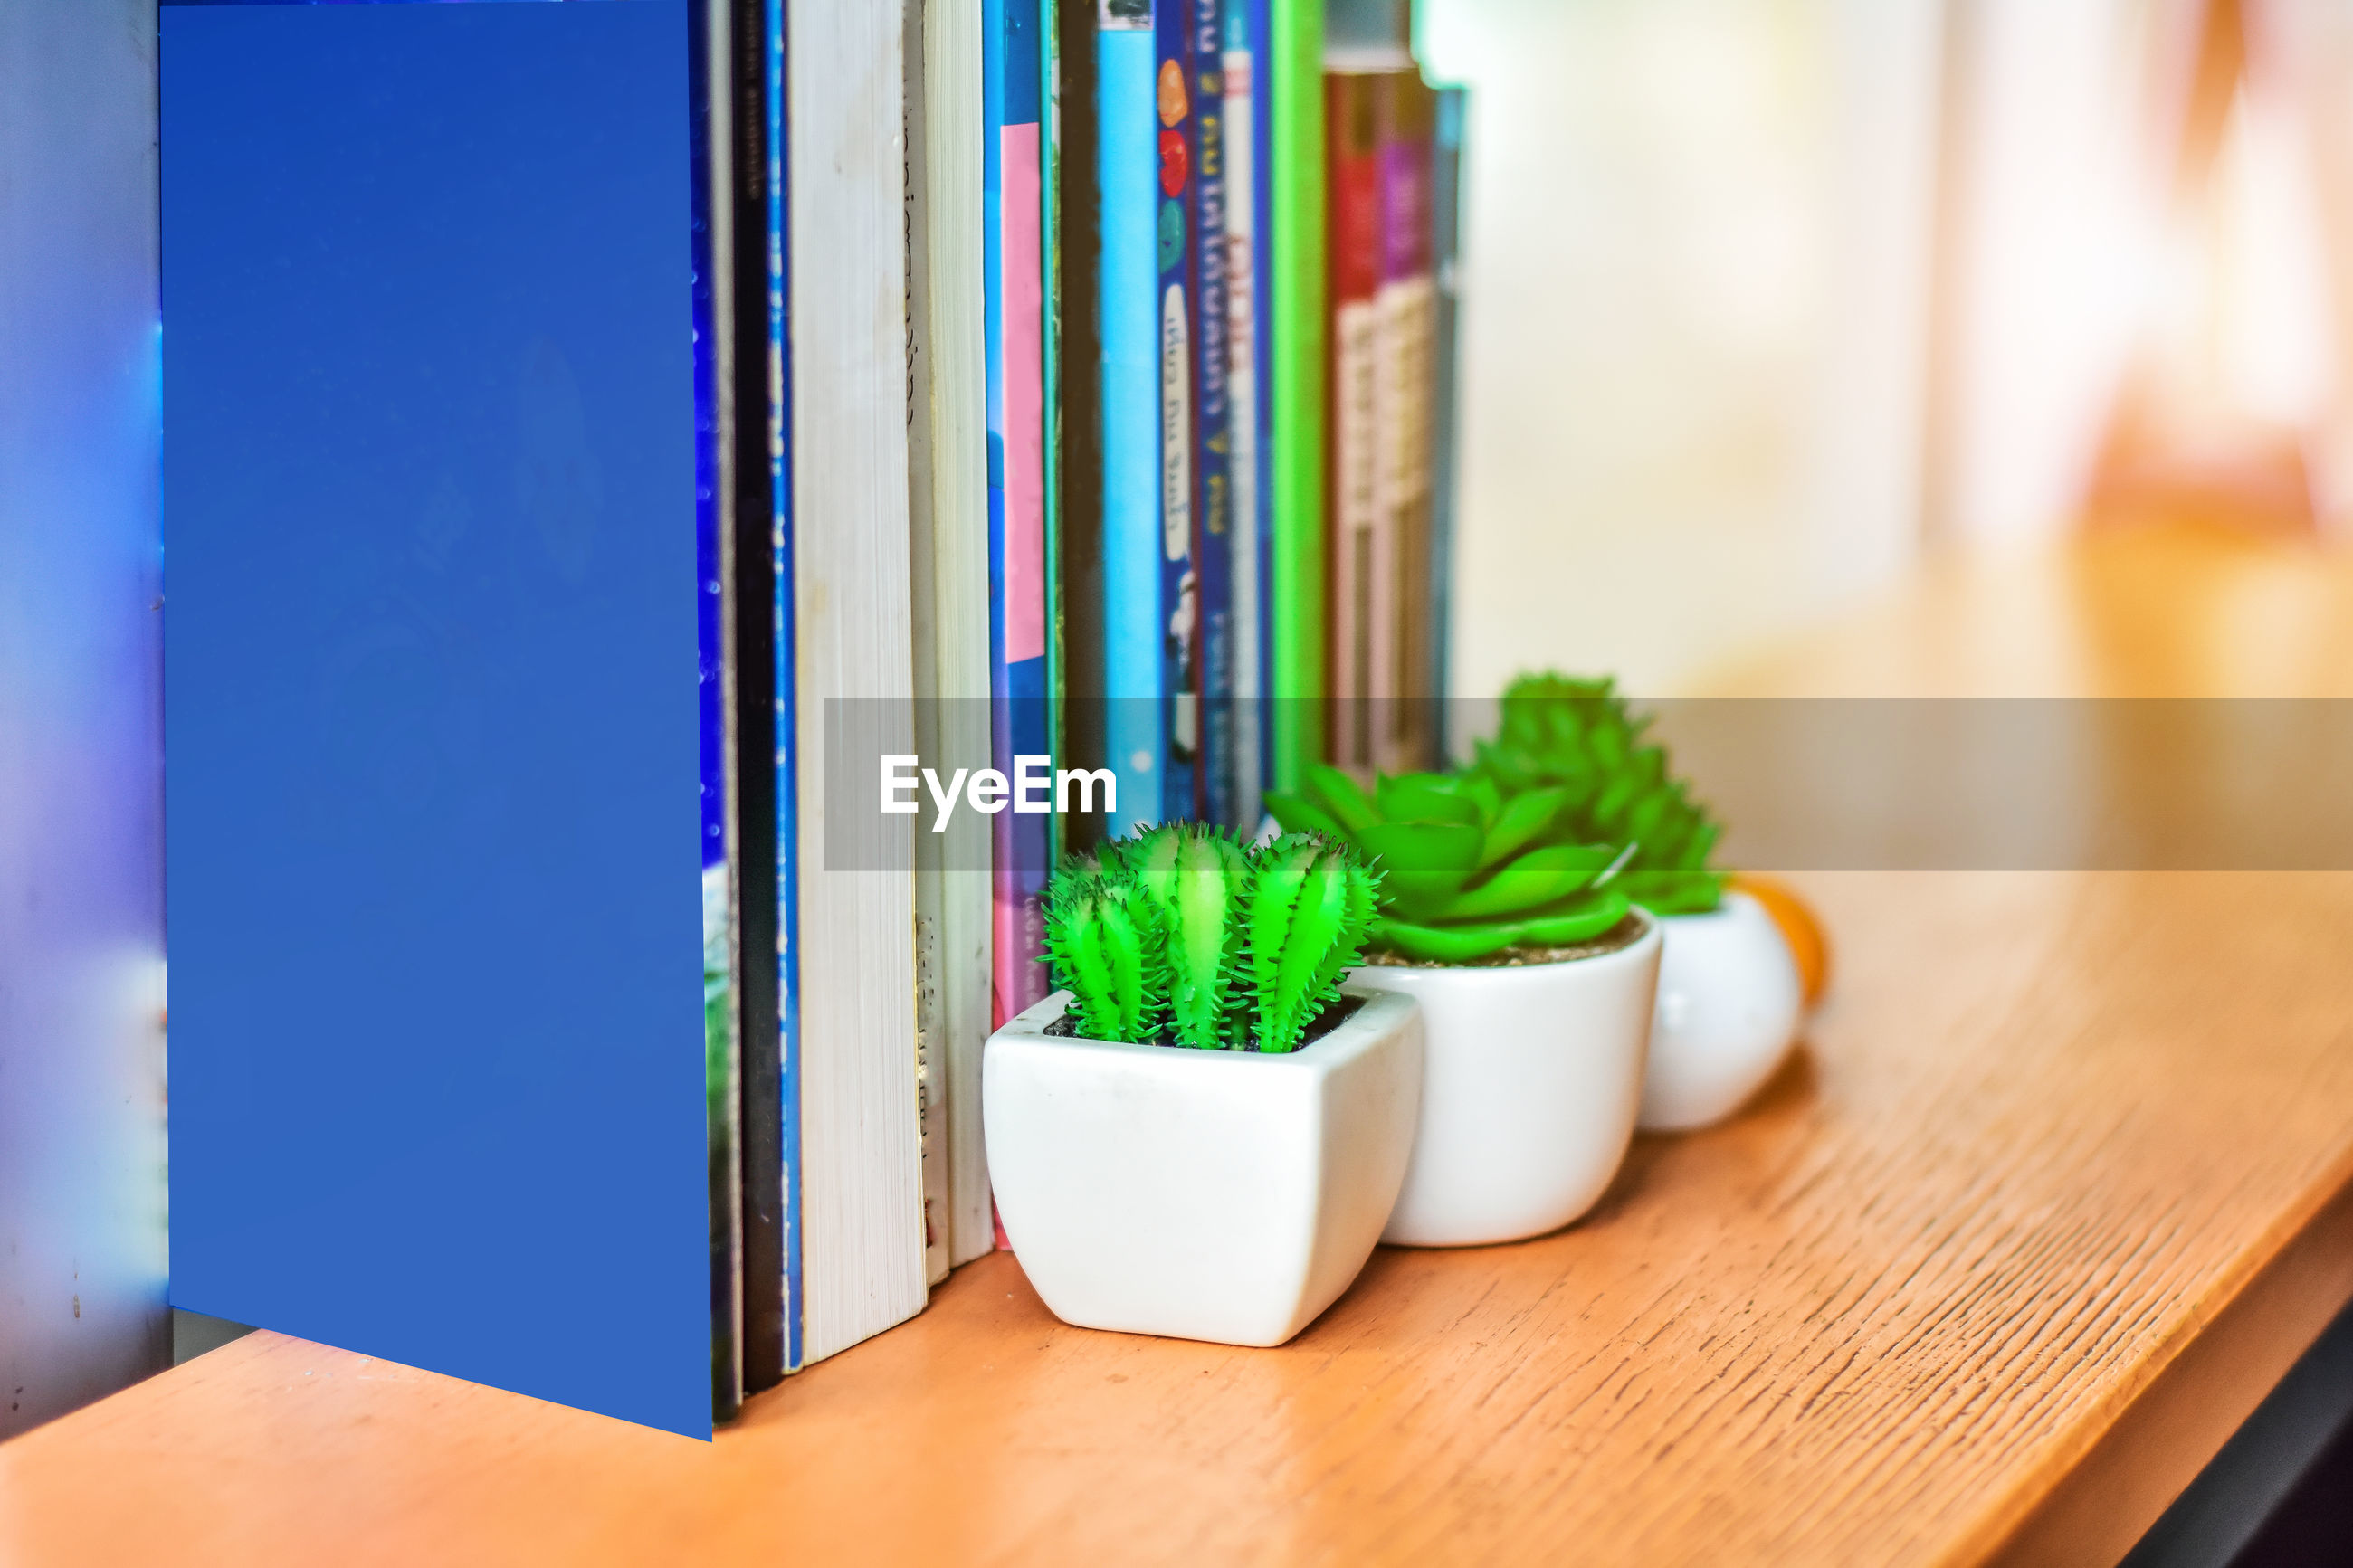 Close-up of books and potted plants on wooden table